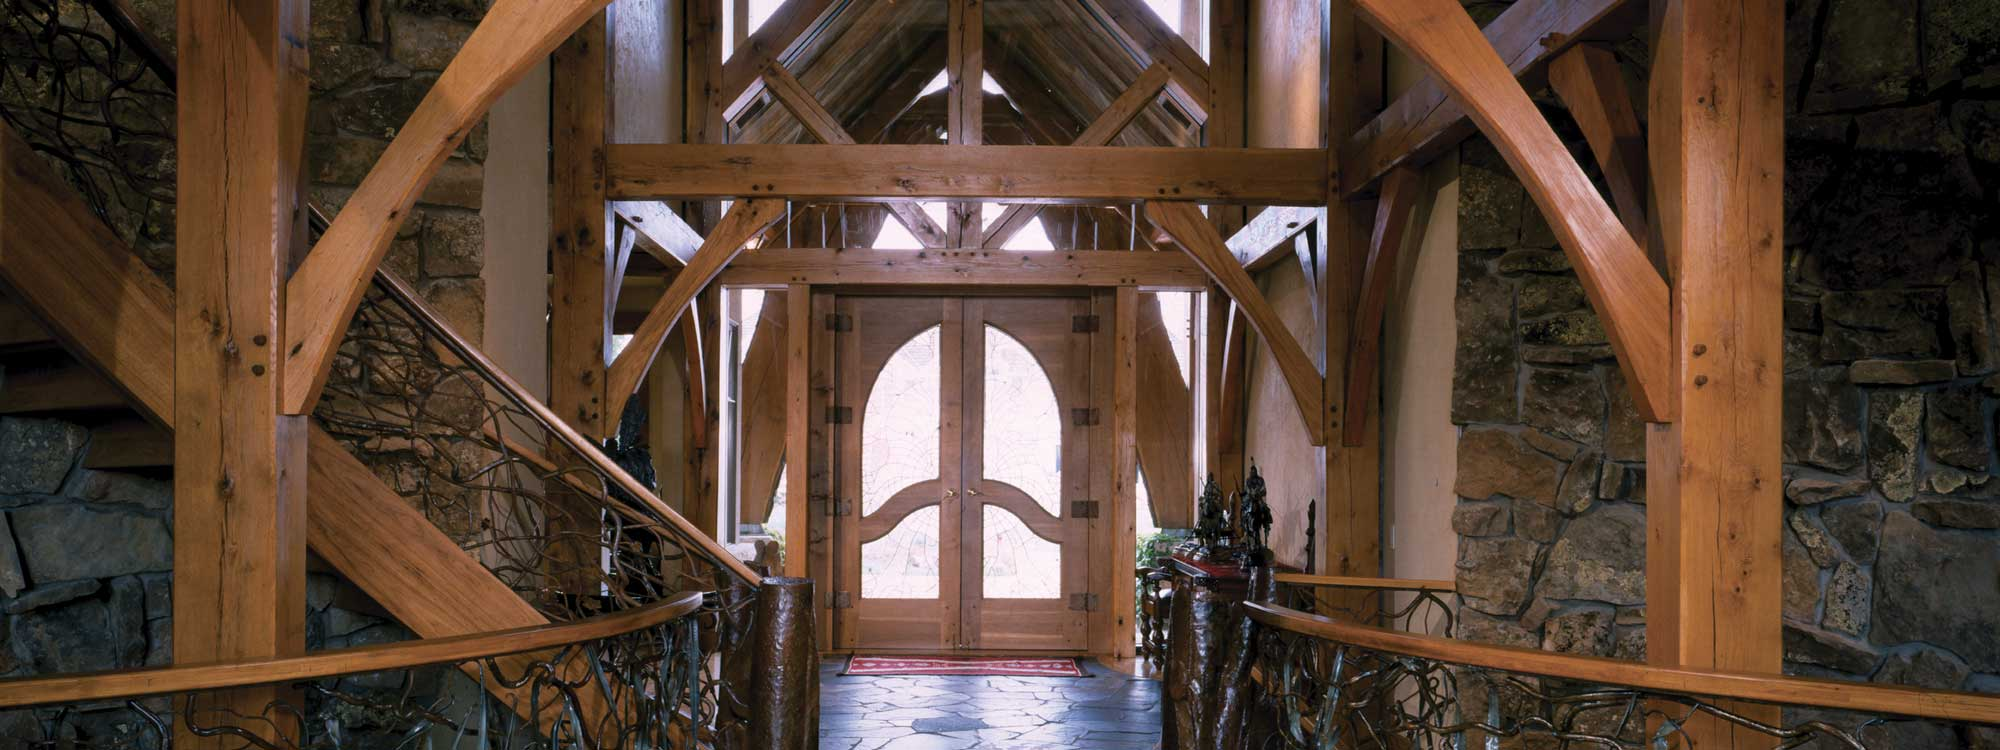 Home - Timber frame entry